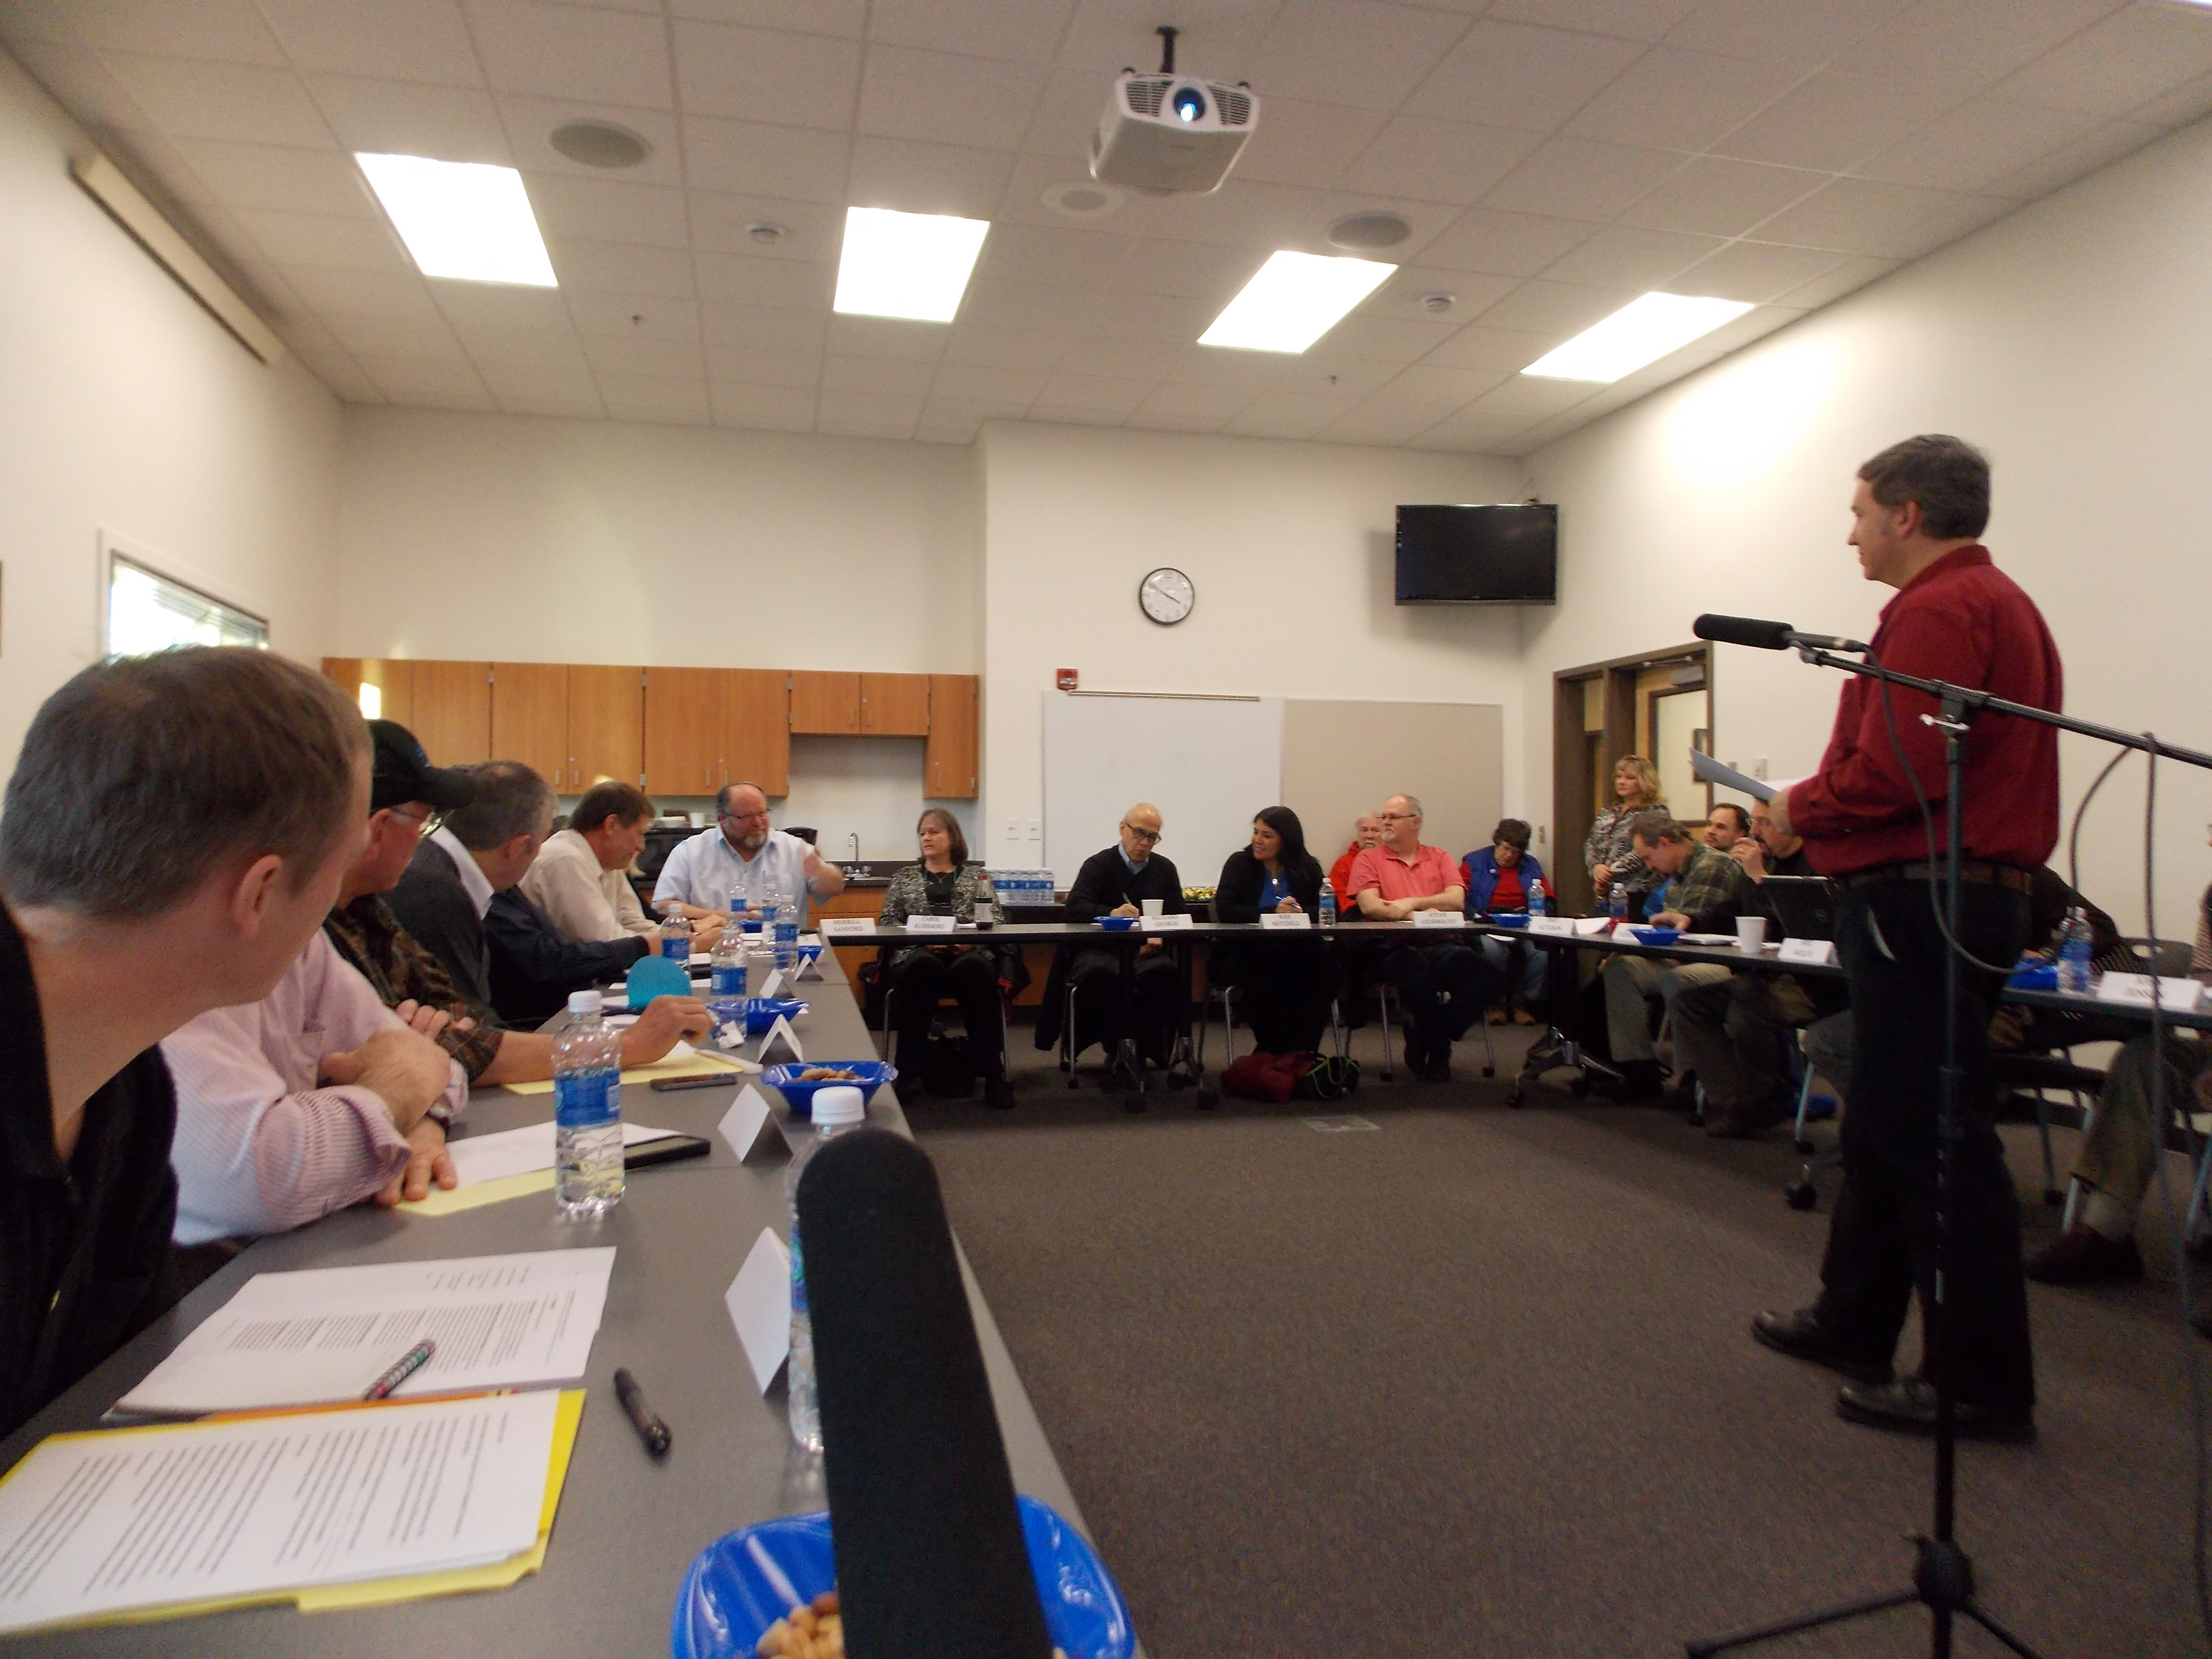 SE leaders, utility managers talk collaboration on energy